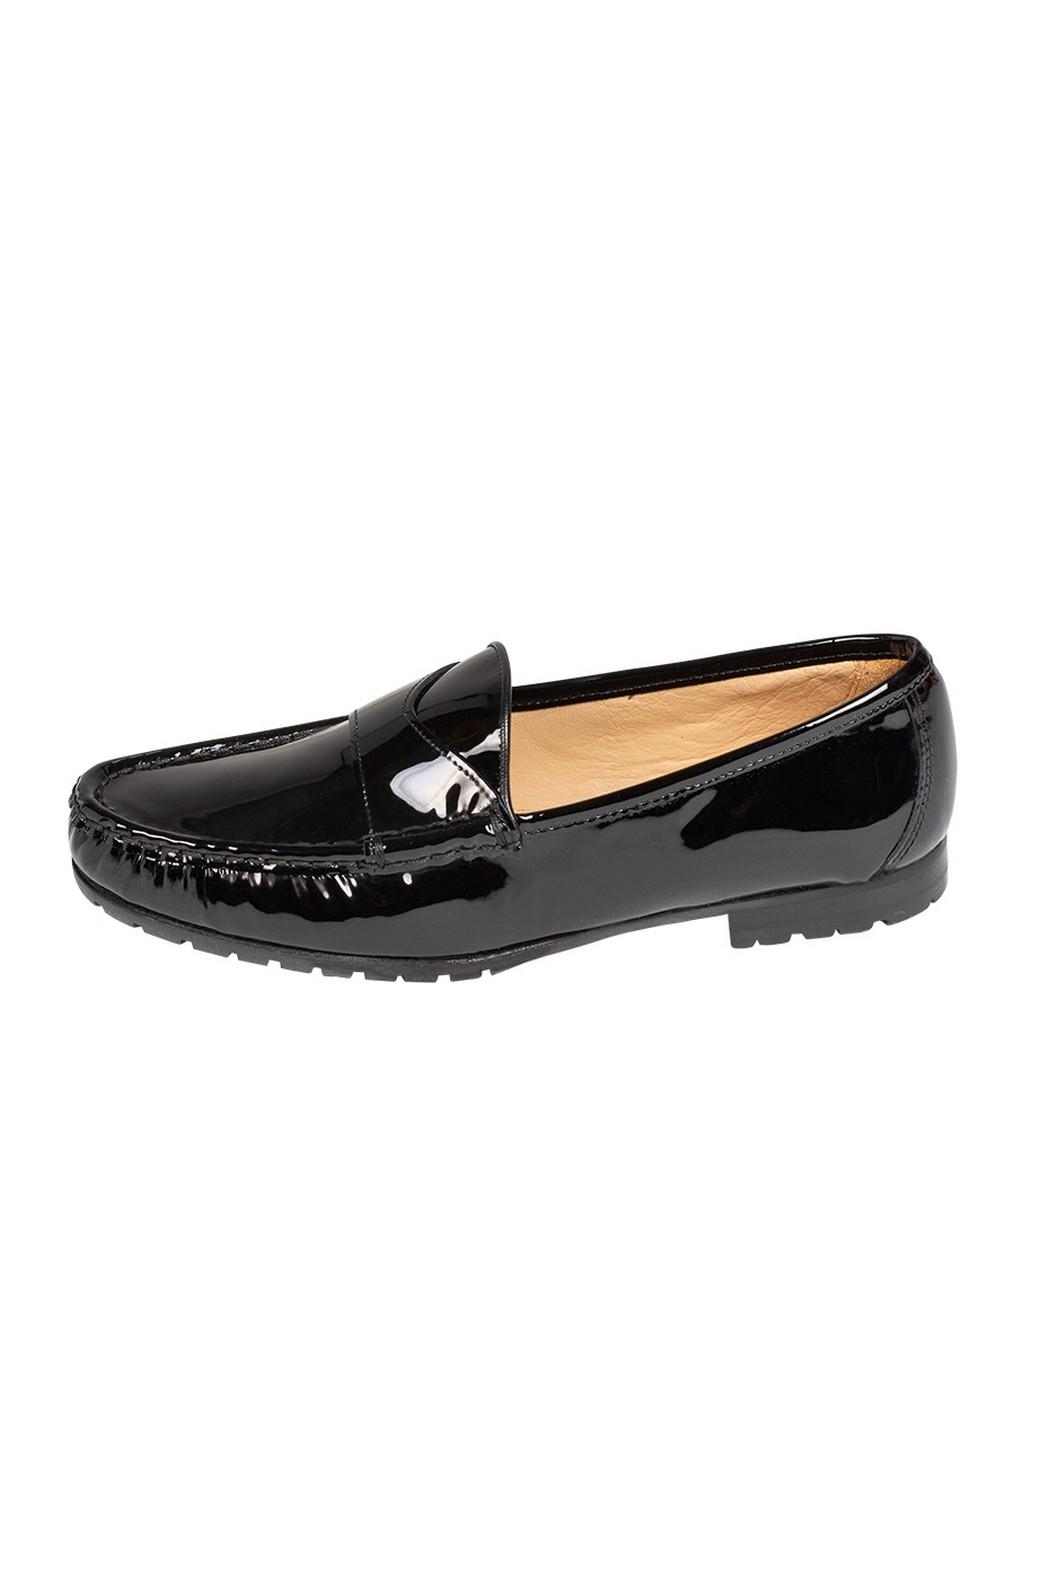 Pascucci Black Patent-Leather Loafer - Main Image